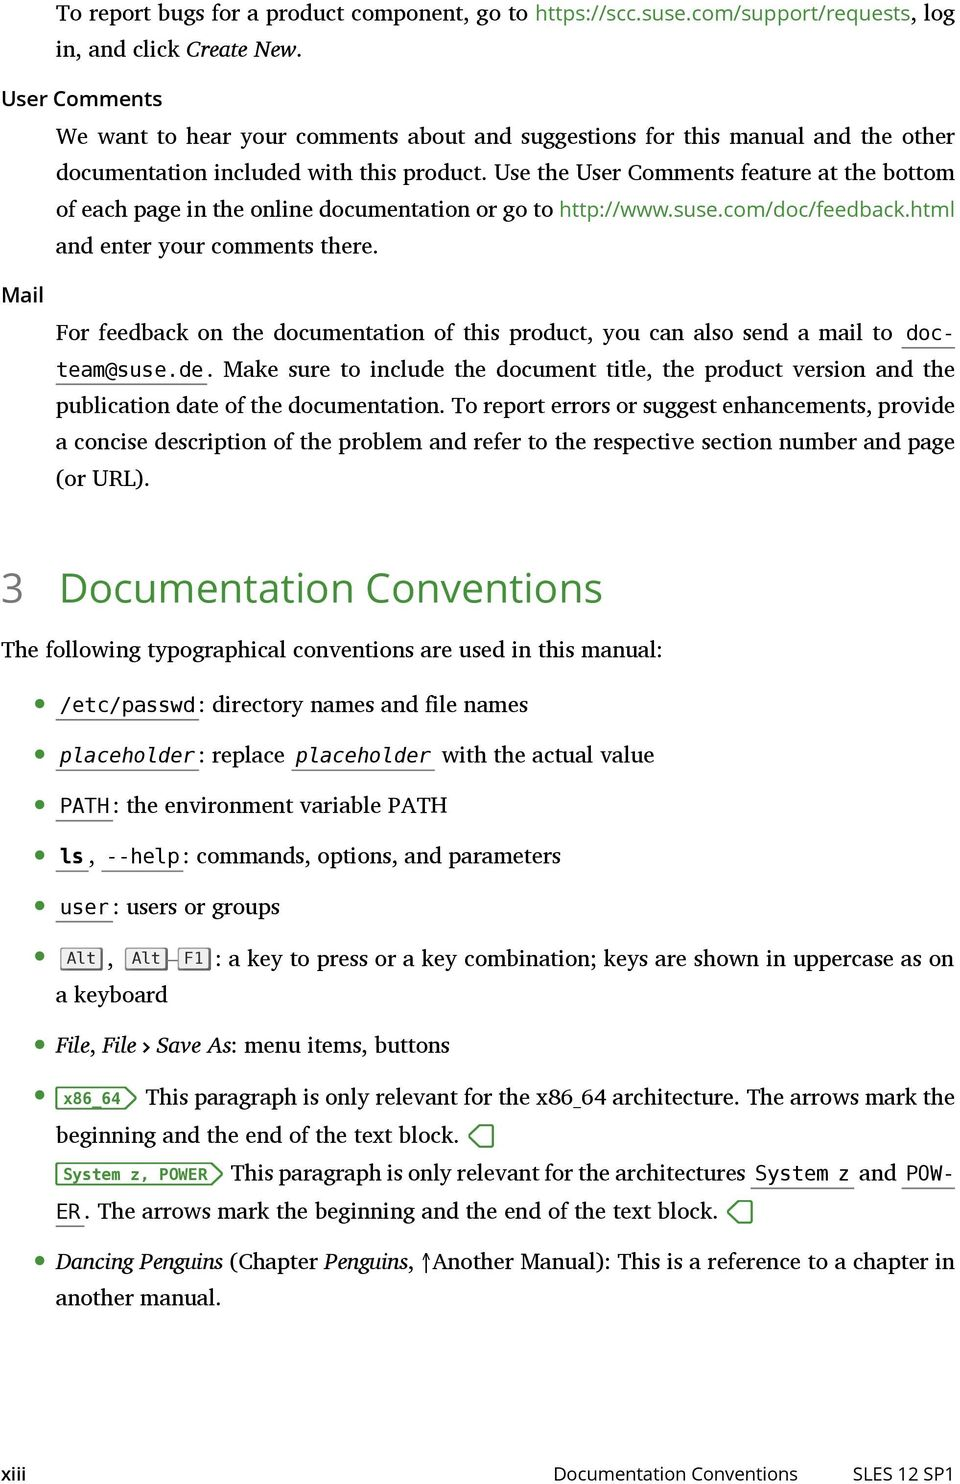 Use the User Comments feature at the bottom of each page in the online documentation or go to http://www.suse.com/doc/feedback.html and enter your comments there.